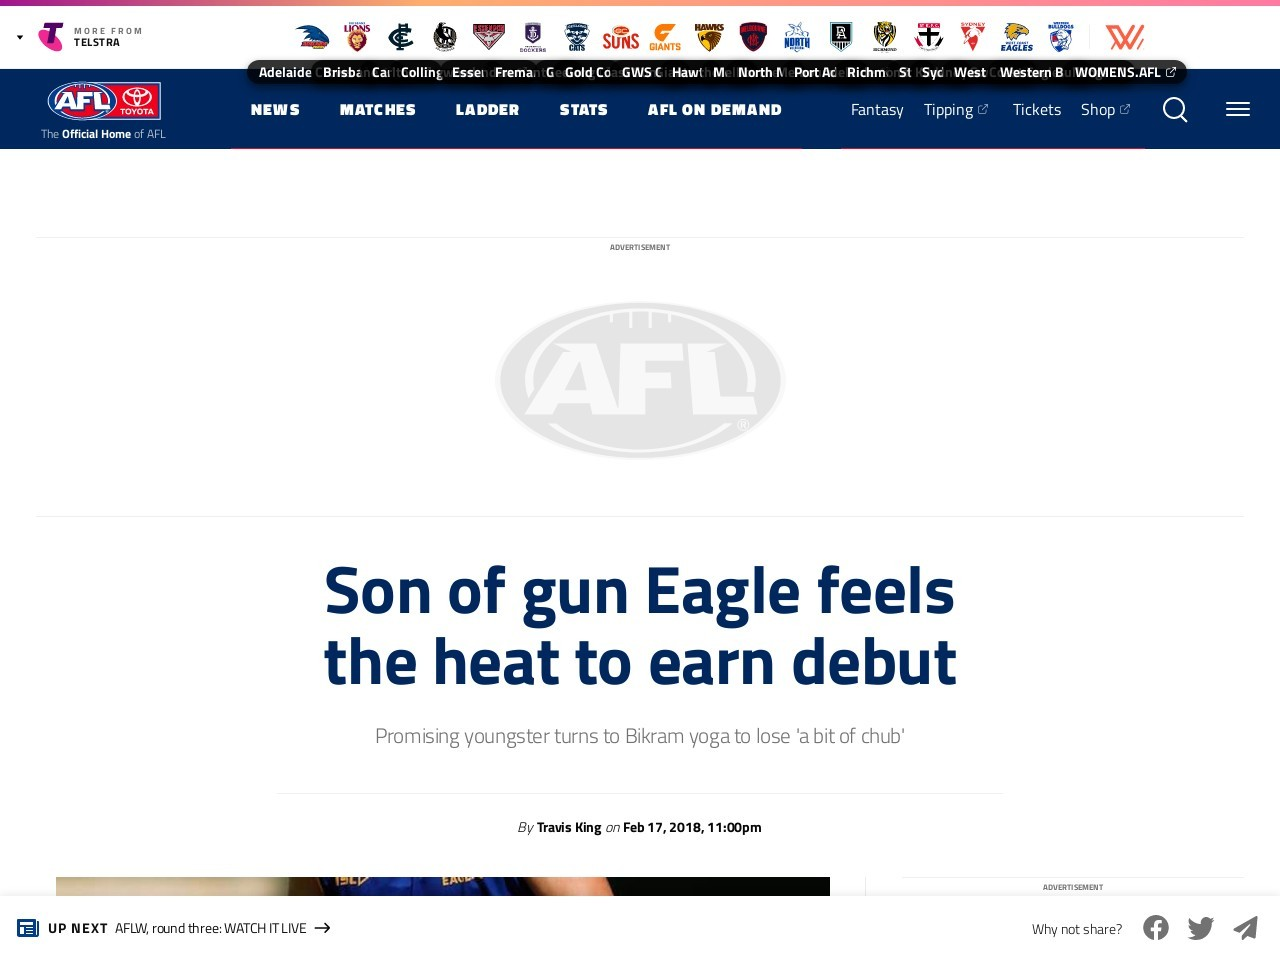 Son of gun Eagle feels the heat to earn debut